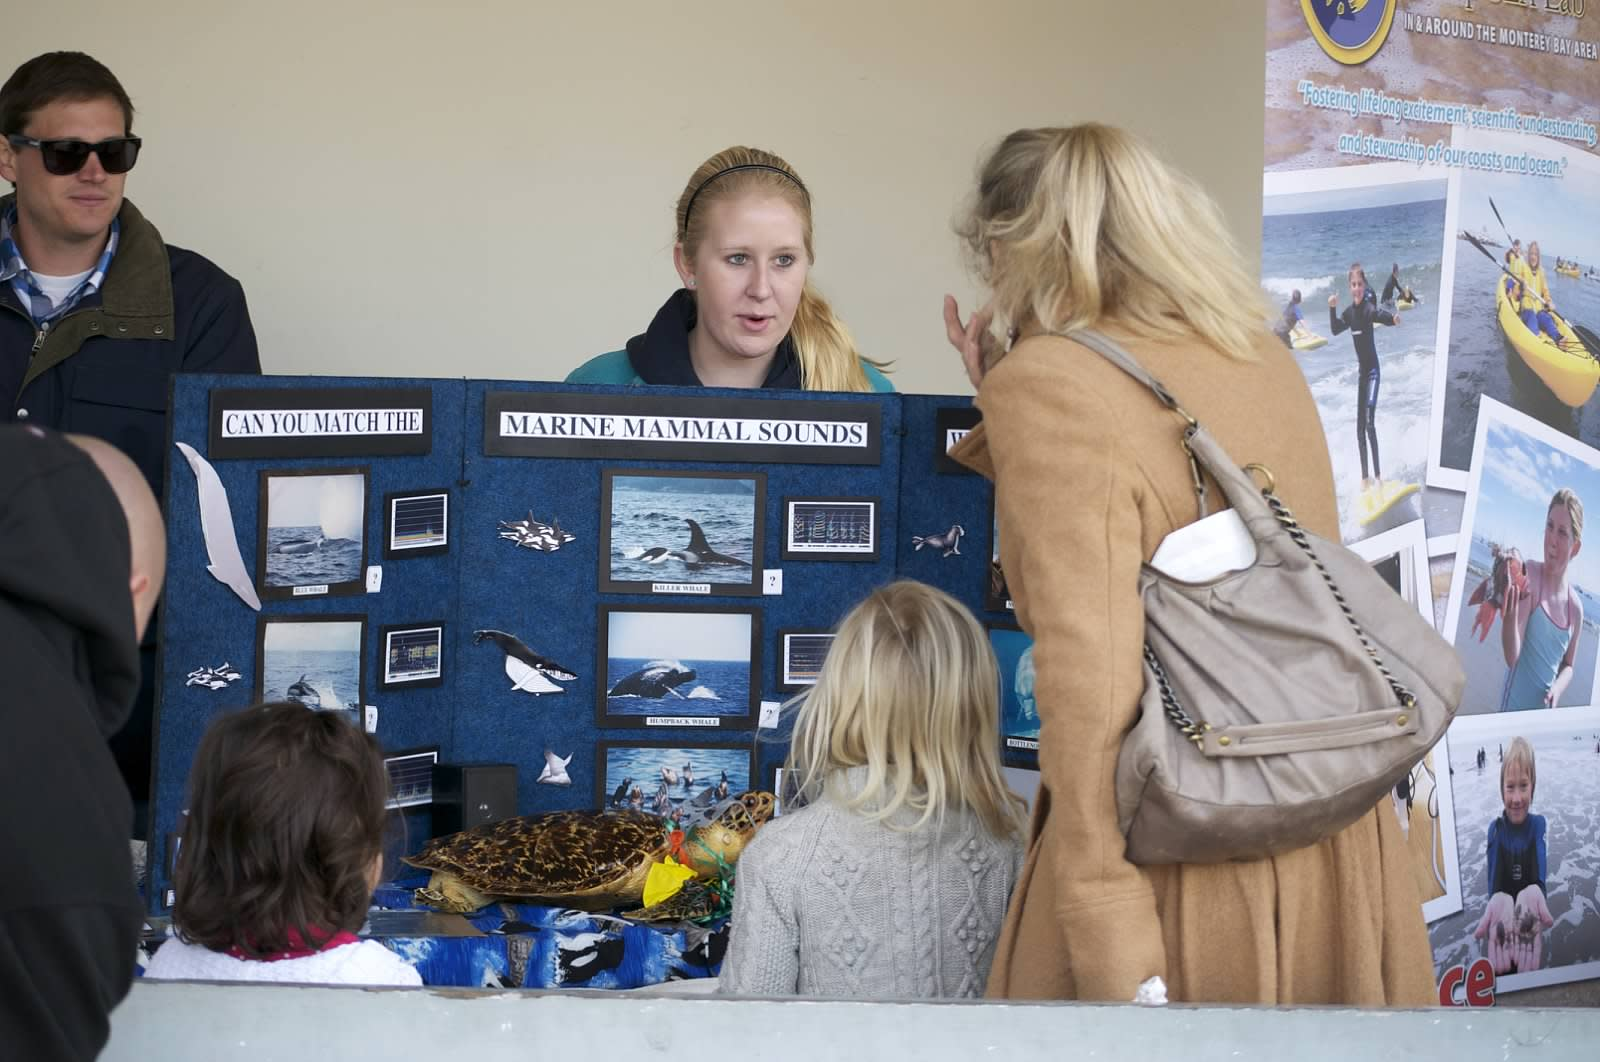 Education on the Migration of Whales